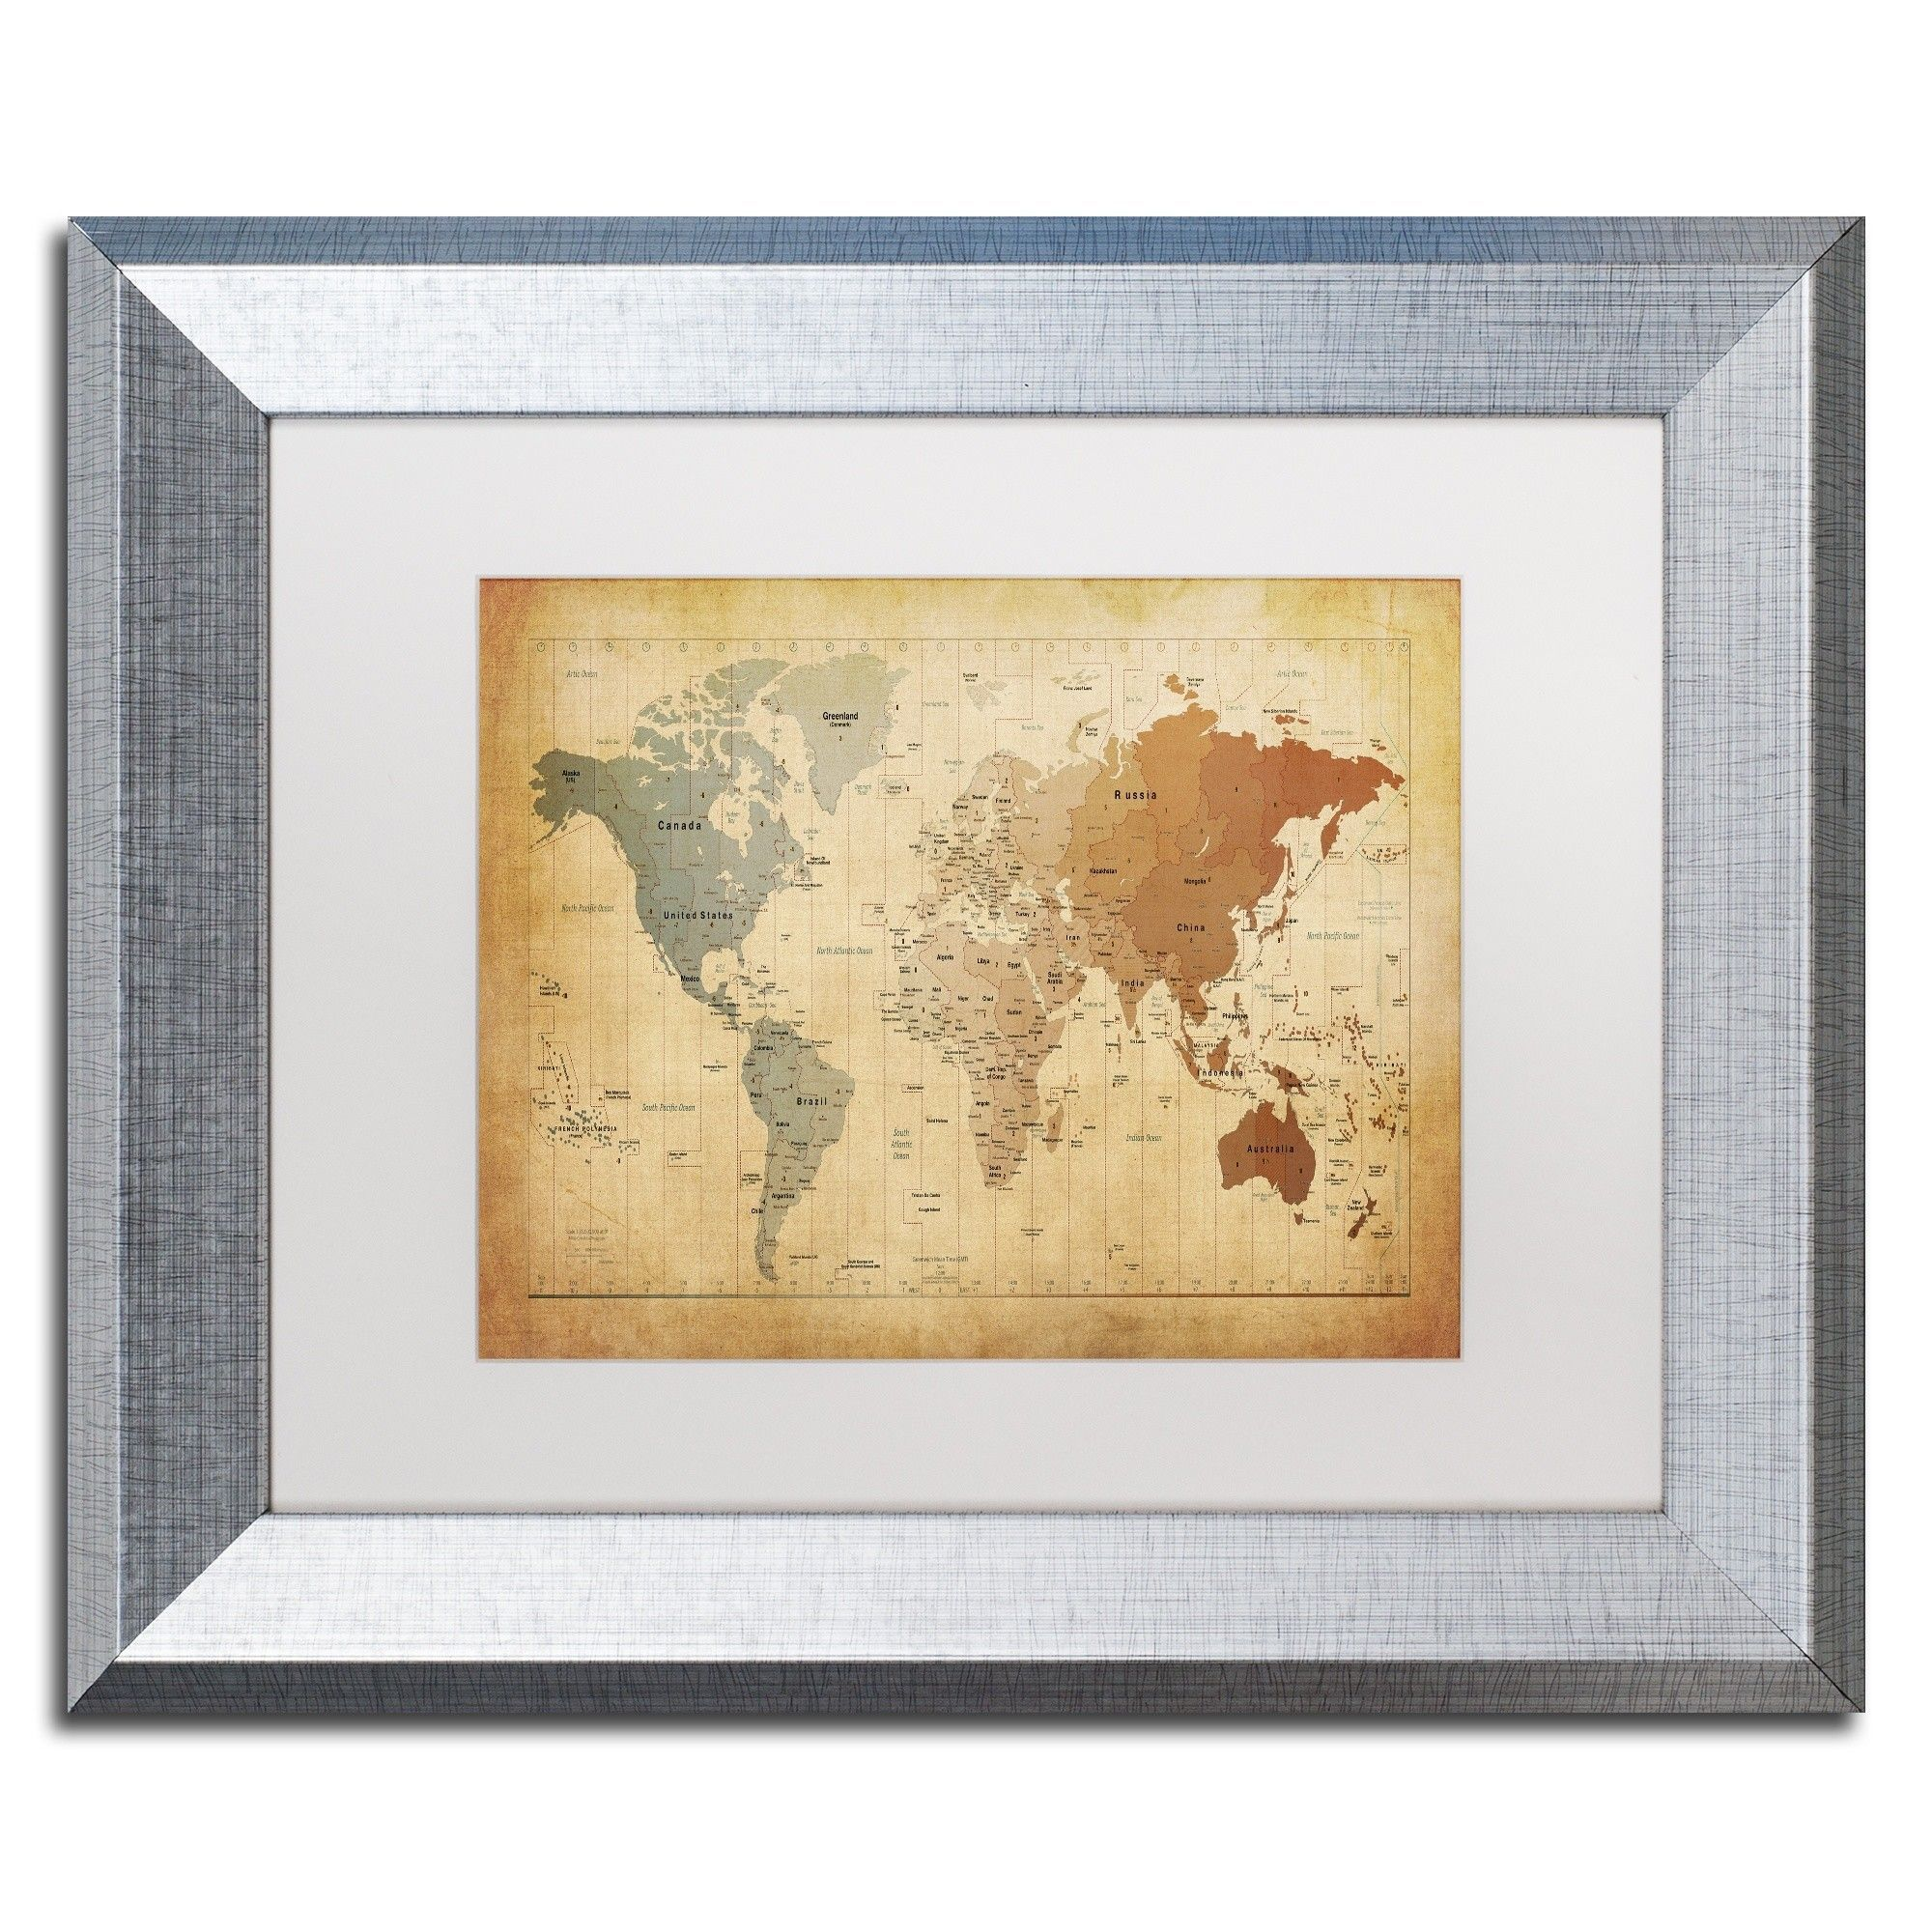 Time zones map of the world by michael tompsett framed graphic art time zones map of the world by michael tompsett framed graphic art gumiabroncs Image collections